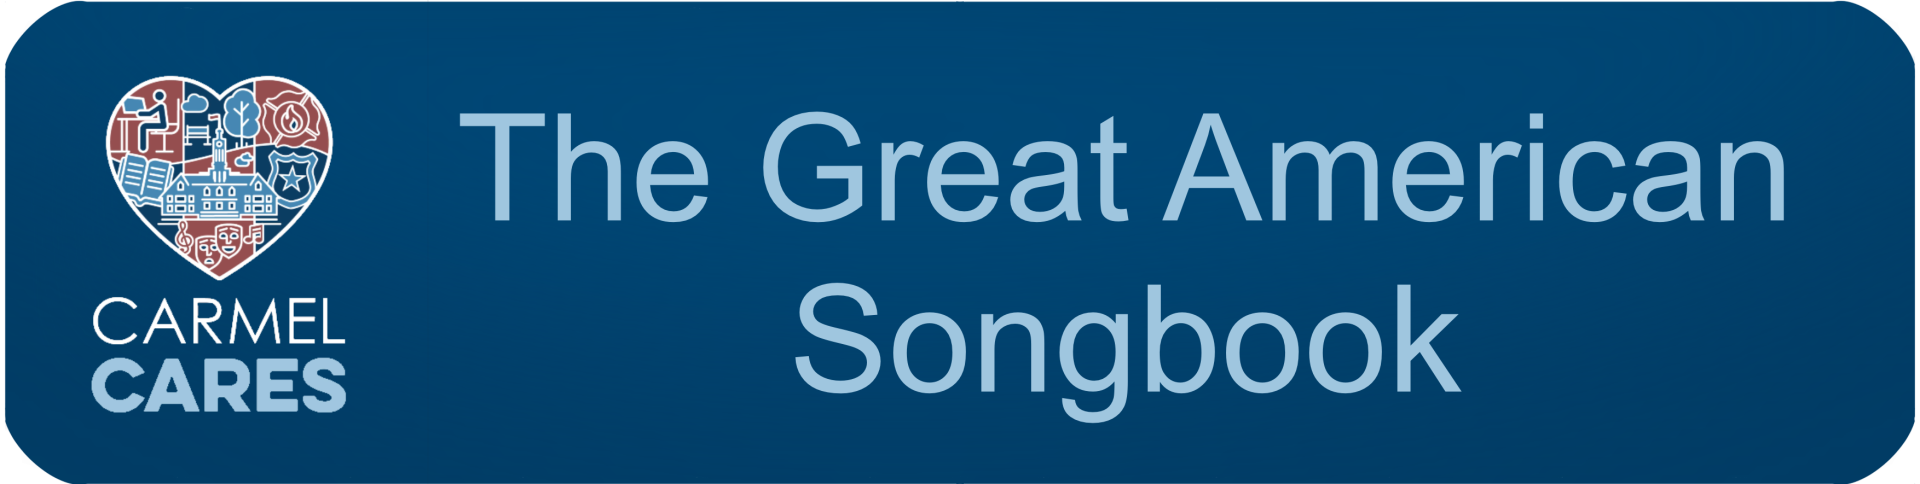 CC American Songbook v2